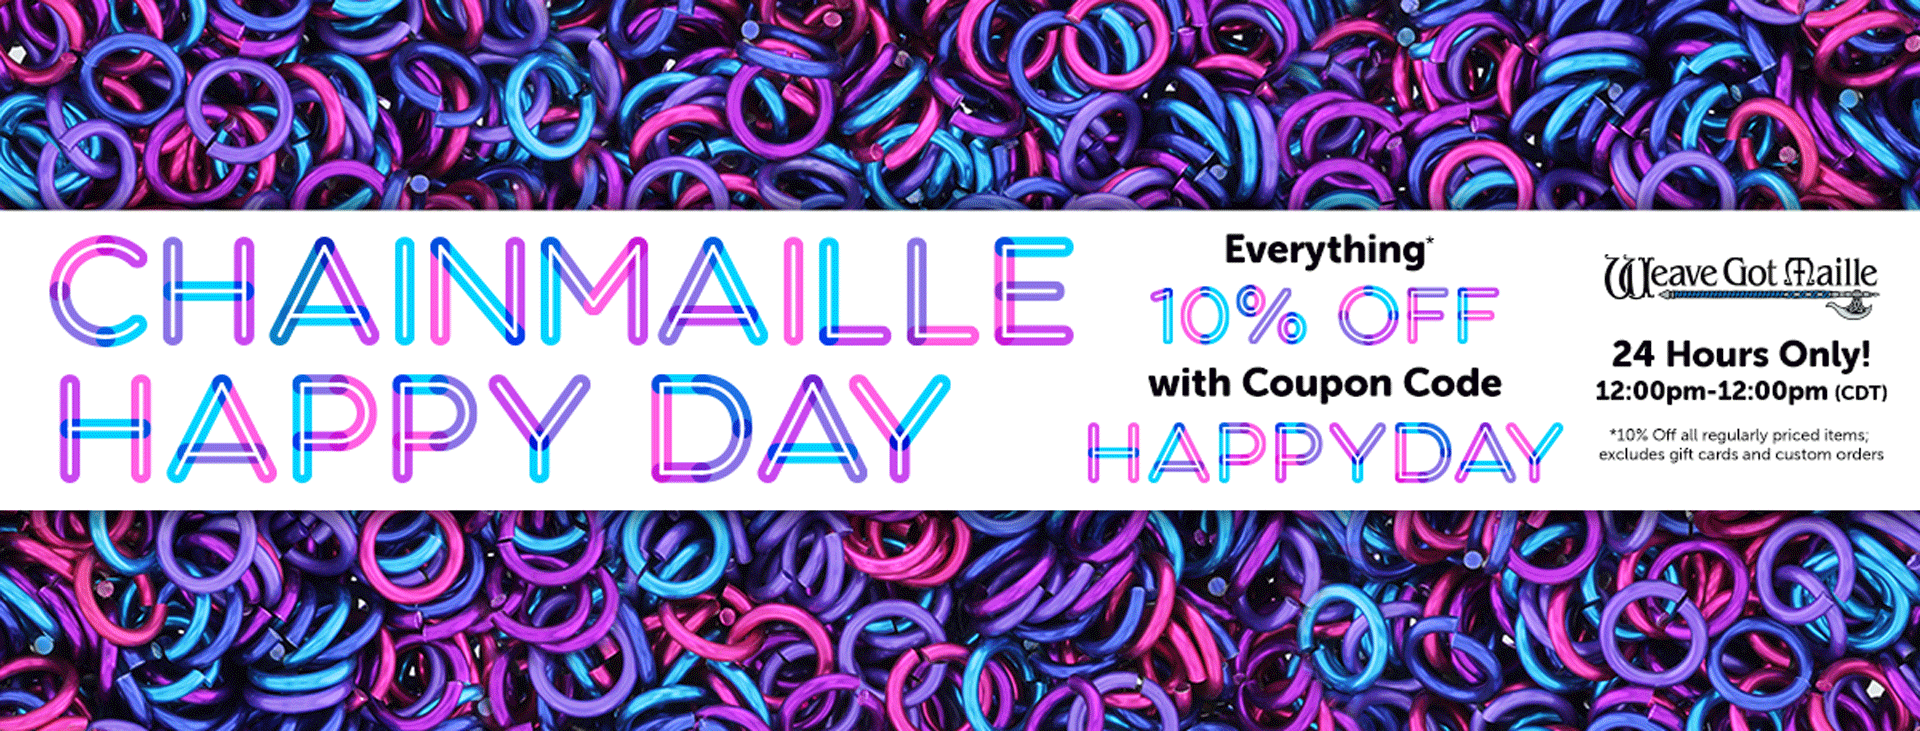 Chainmaille Happy Day - 10% off Everything for 24 Hours with Coupon Code: HAPPYDAY